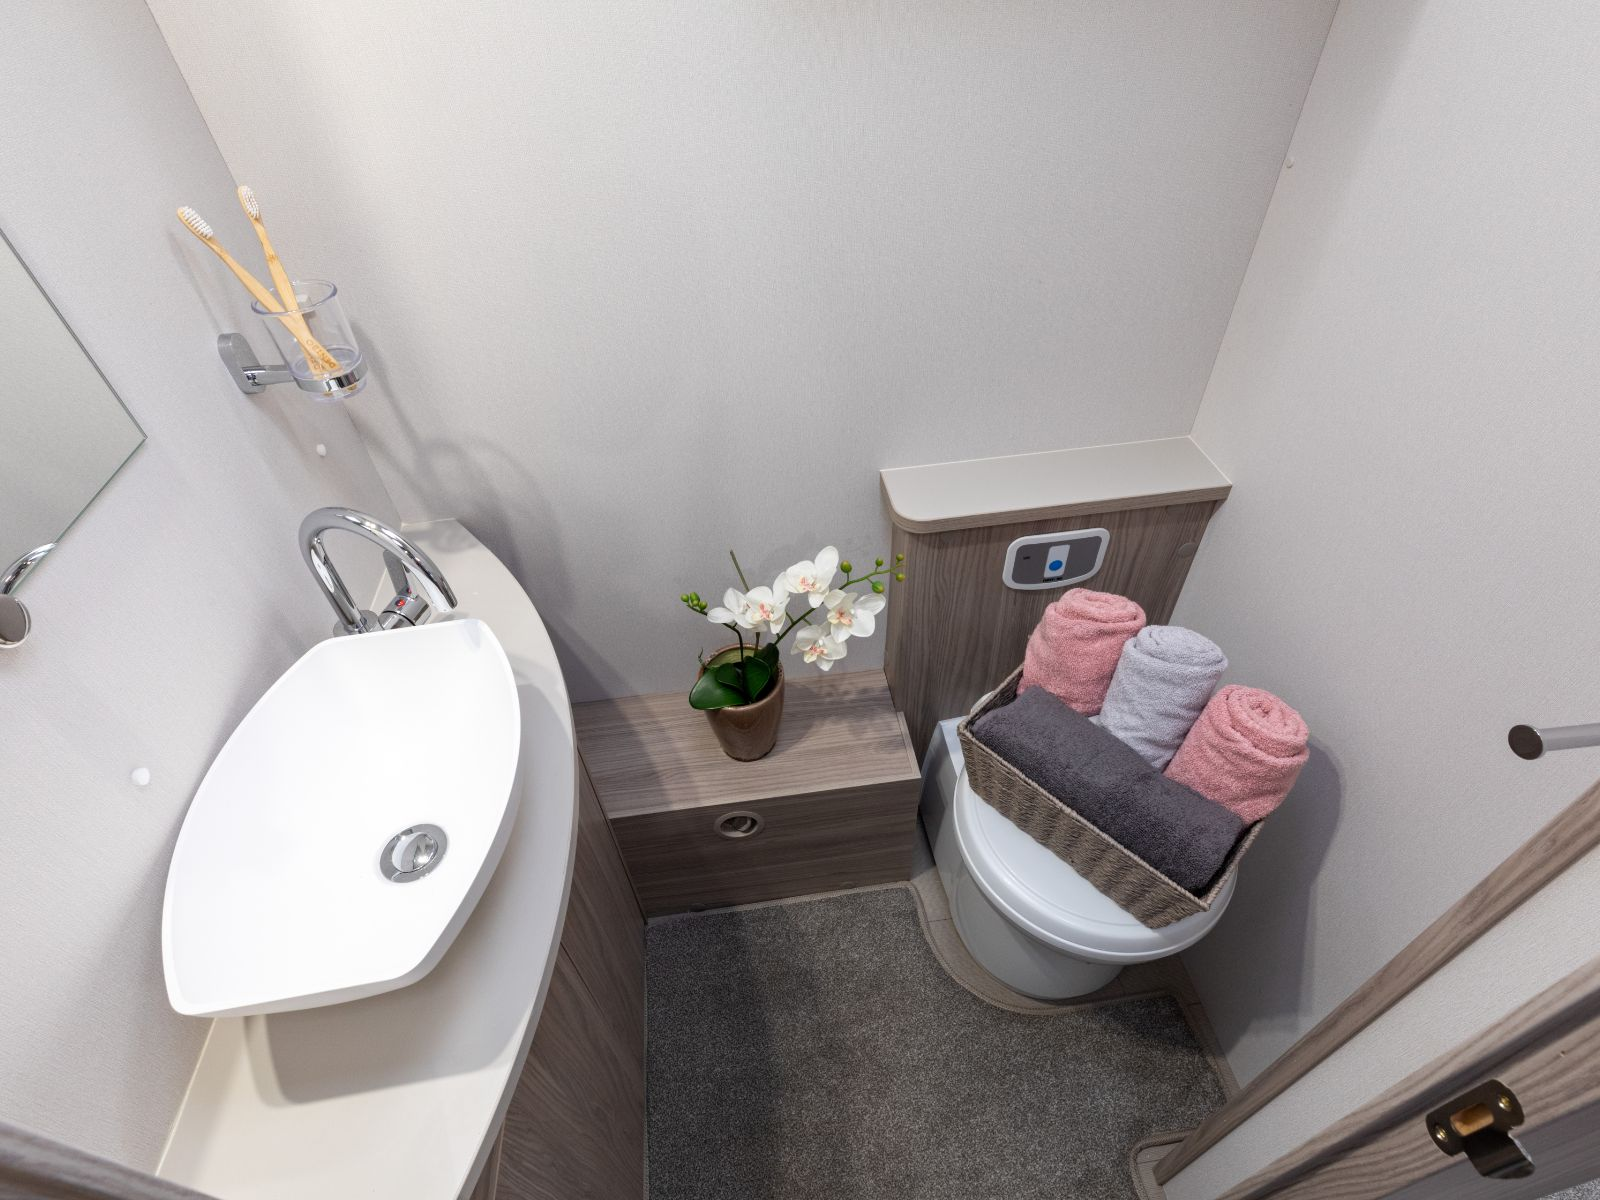 toilet and sink unit with storage'